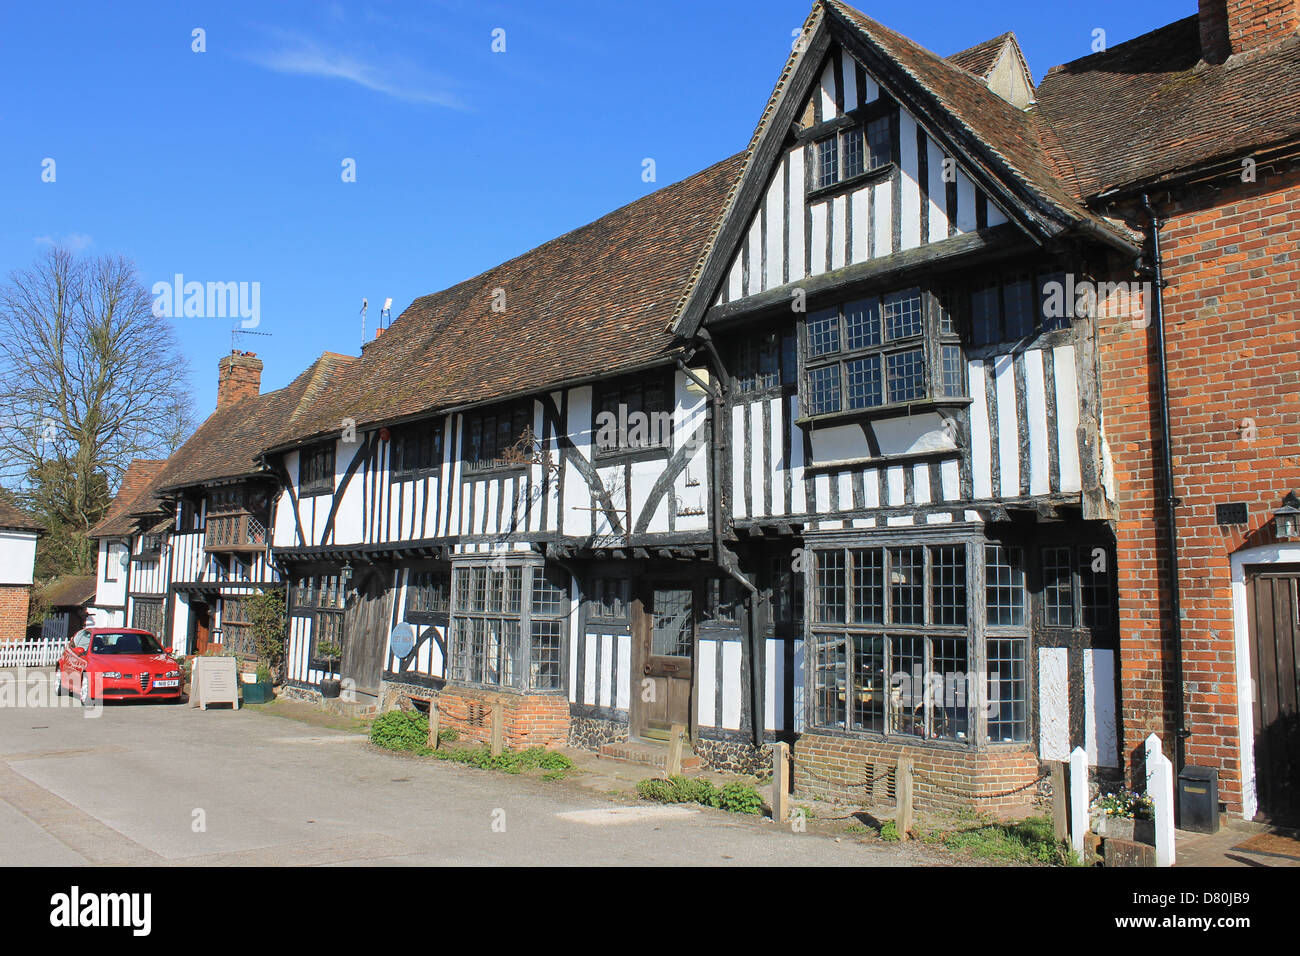 Timber-framed buildings, Chilham Square, Chilham, near Canterbury, Kent, UK; film location for Agatha Christie's - Stock Image